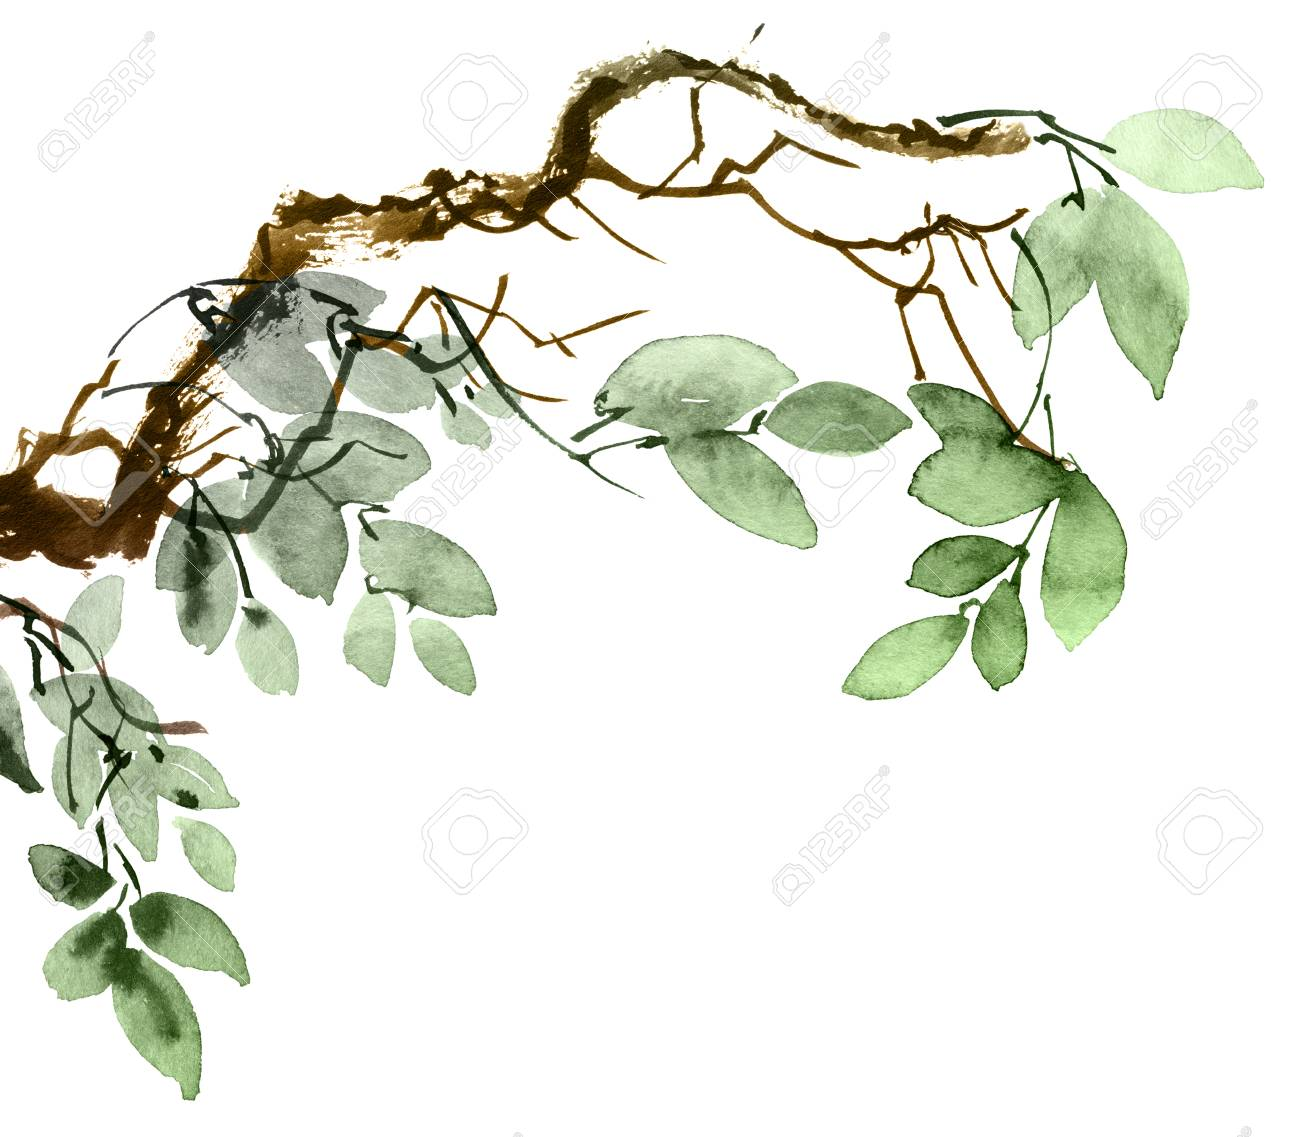 Watercolor And Ink Illustration Of Tree Branch With Leaves Oriental Stock Photo Picture And Royalty Free Image Image 120937896